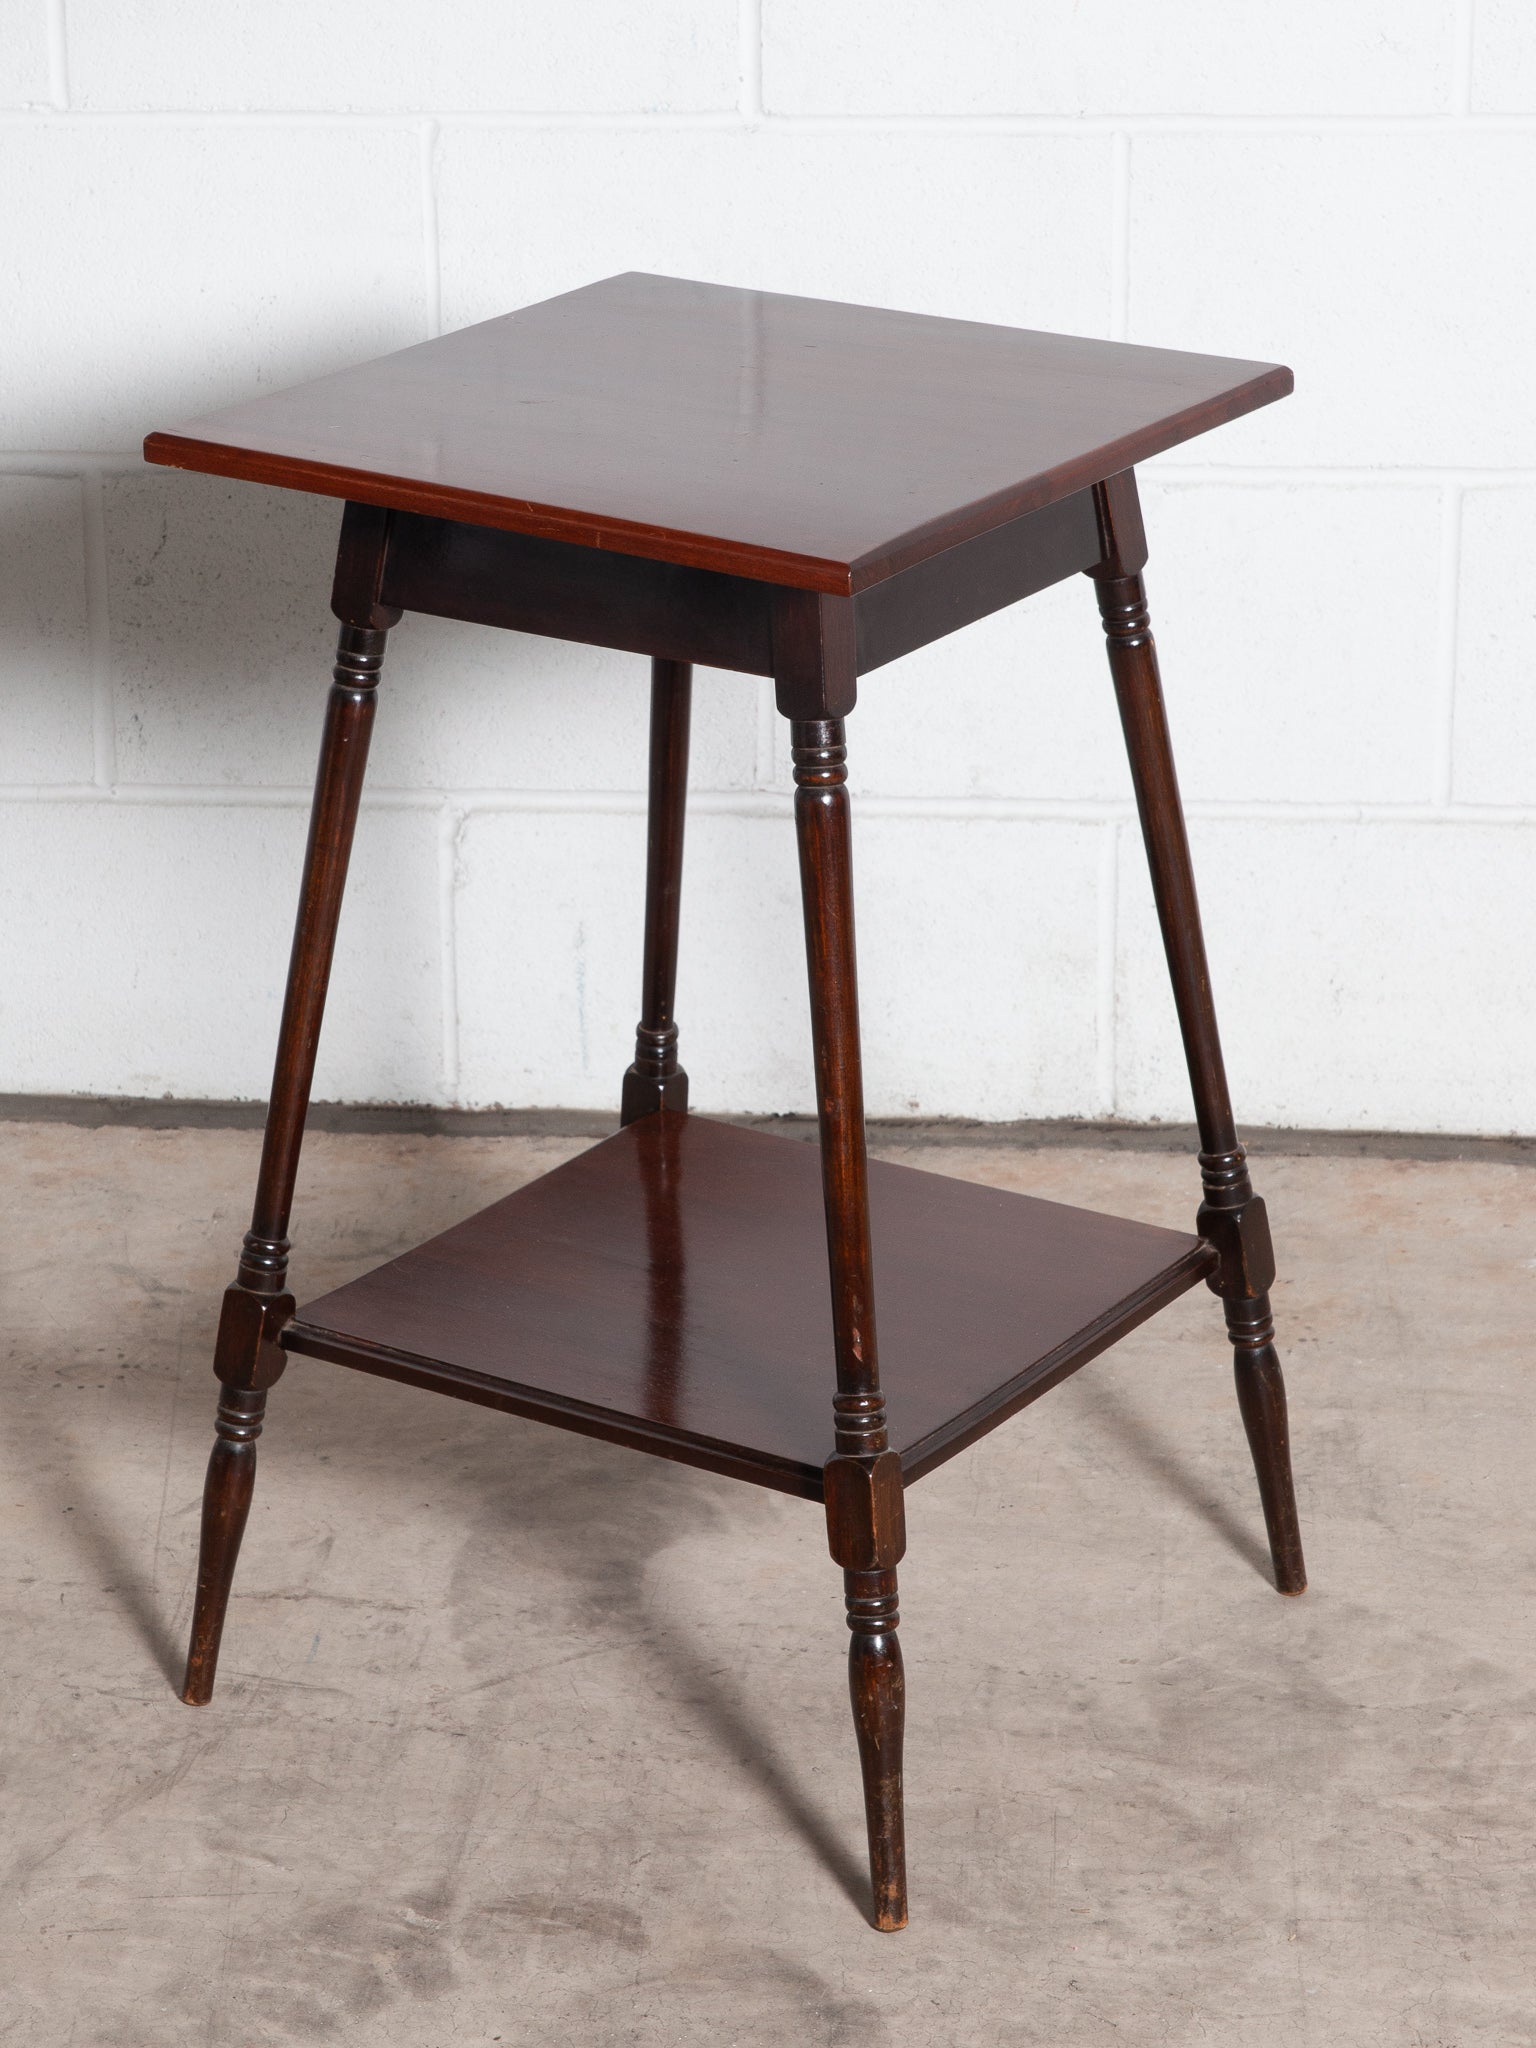 Godwin Table